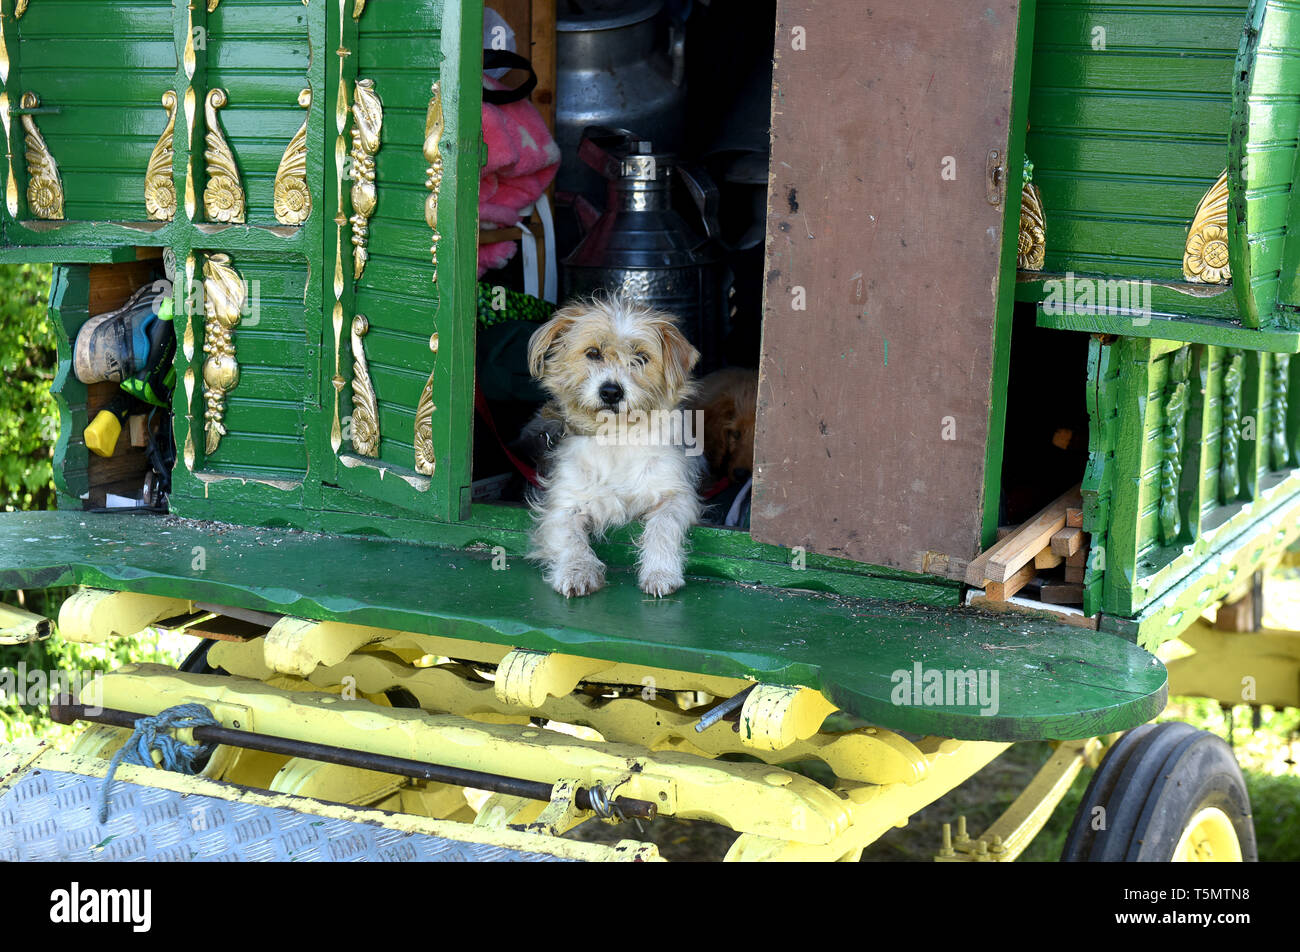 Pet dog on Romany Gypsy travellers caravan in Shropshire England Uk - Stock Image